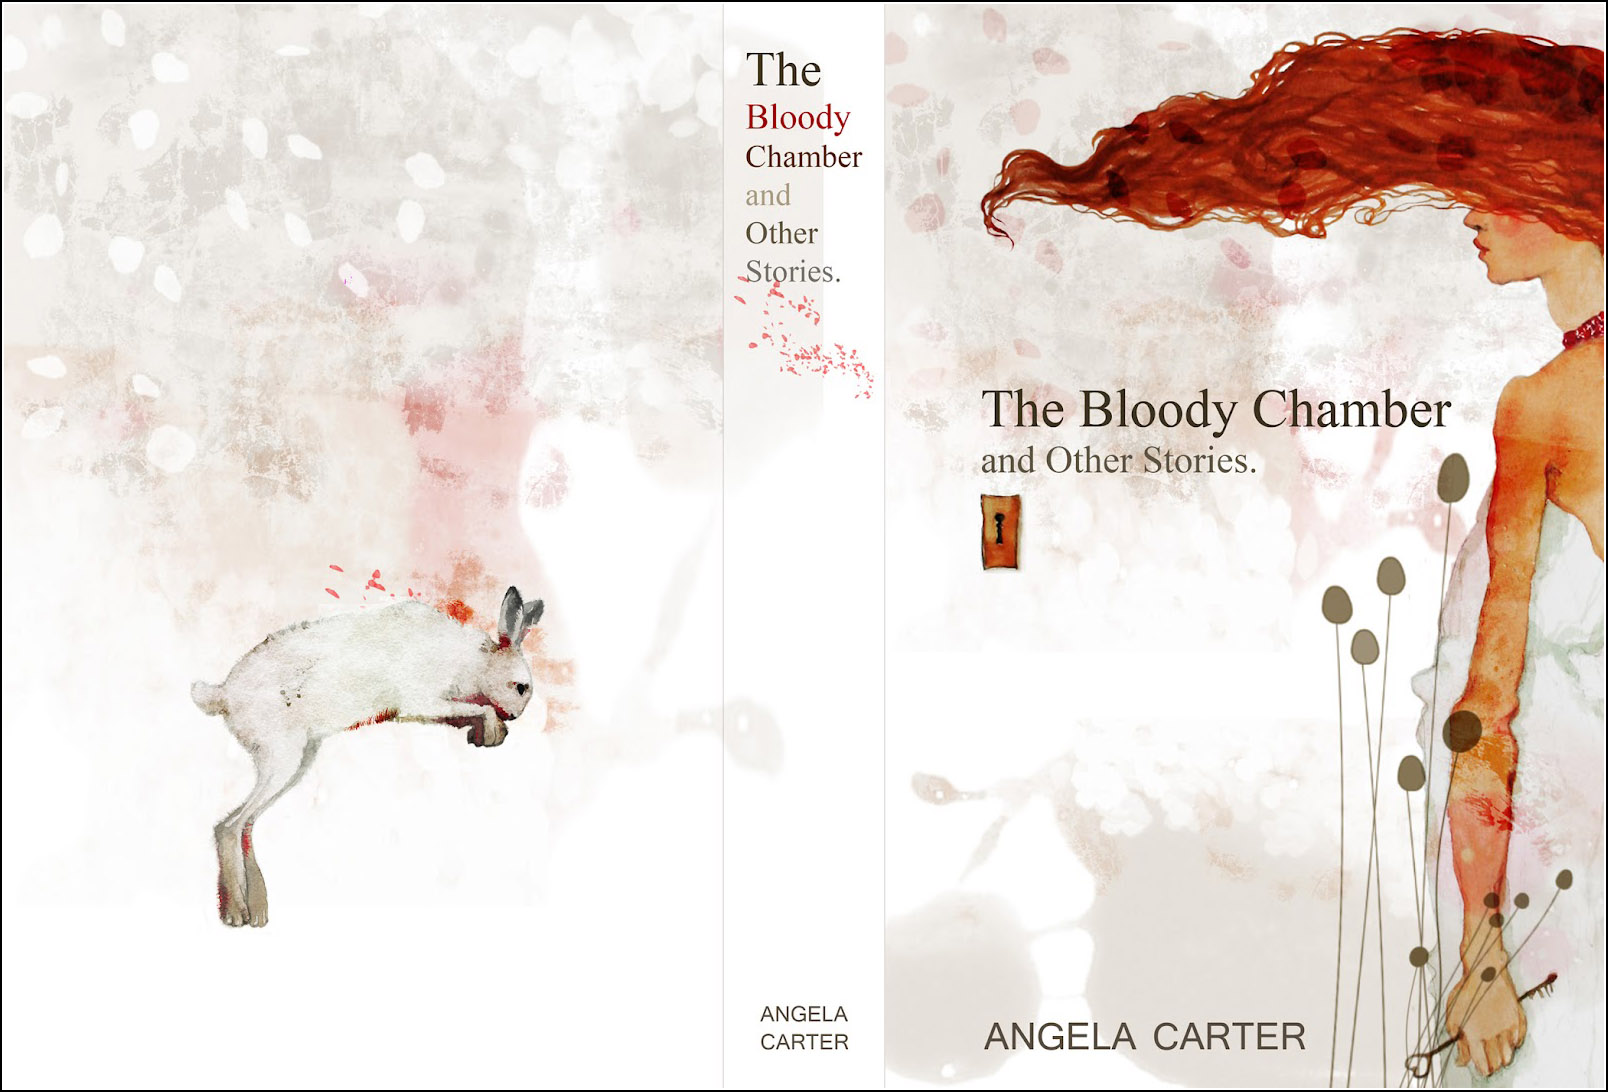 Angela carter and the bloody chamber essay